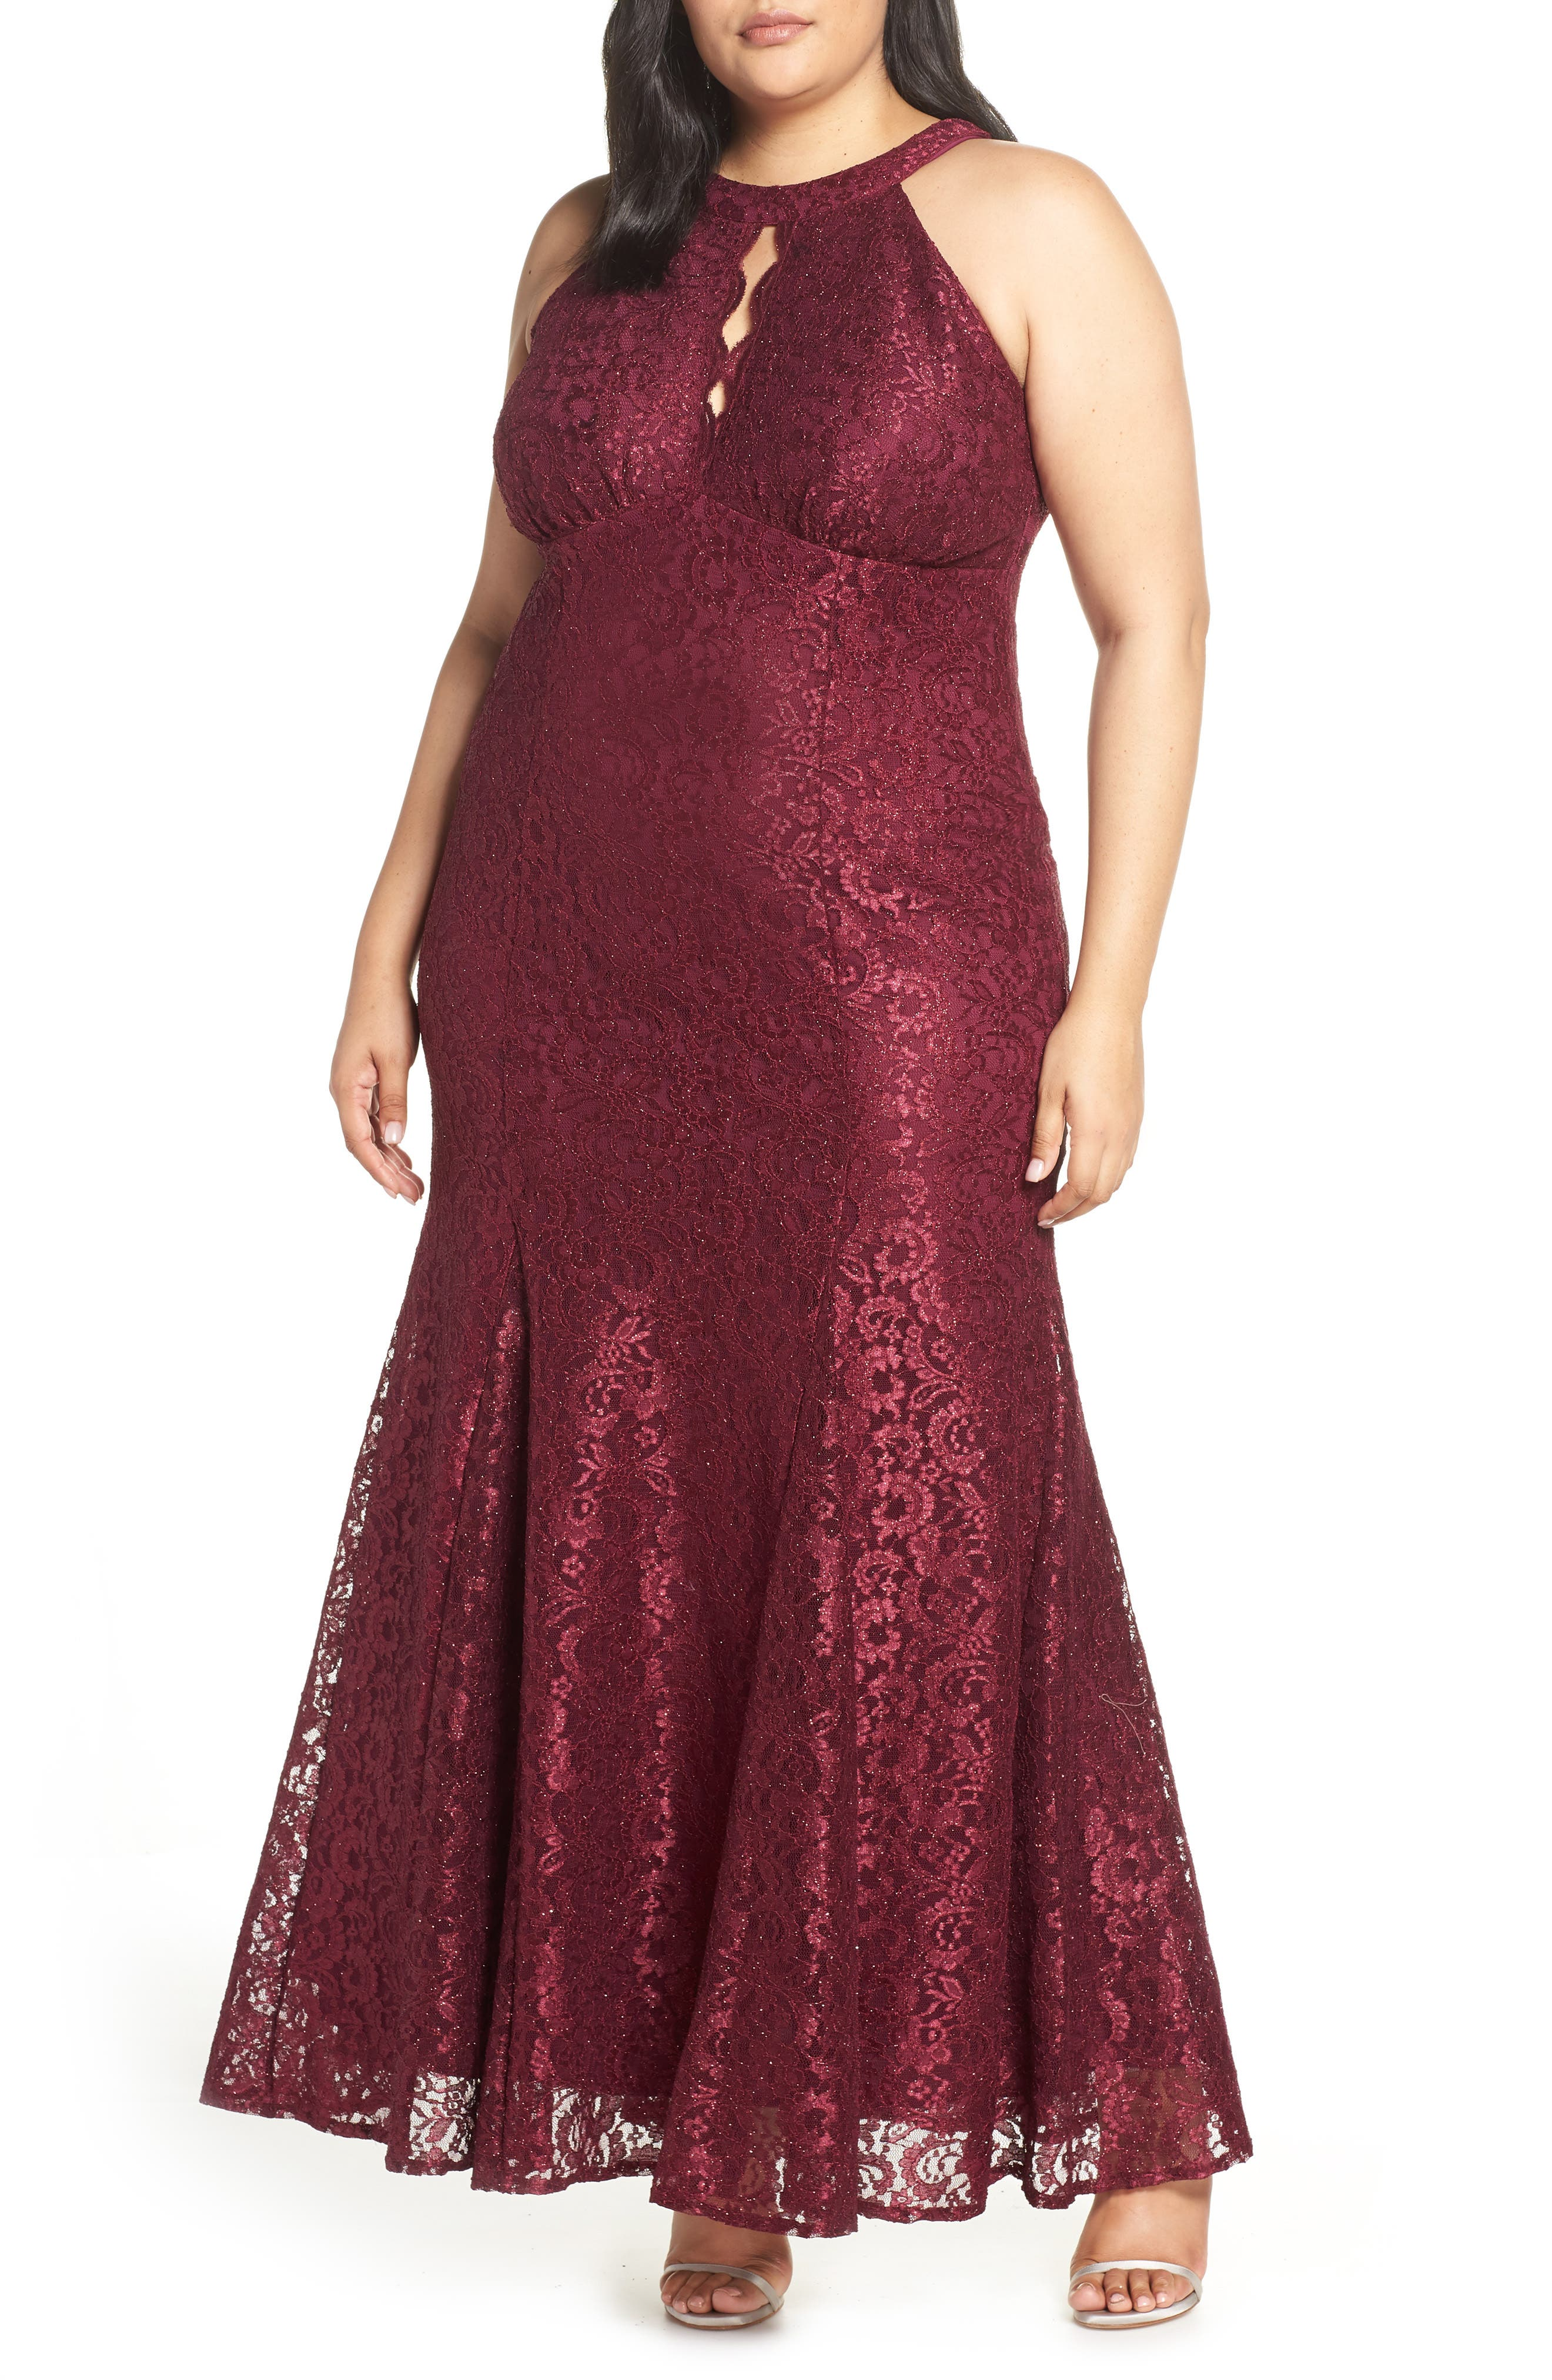 Plus Size Morgan & Co. Glitter Lace Trumpet Gown, Burgundy